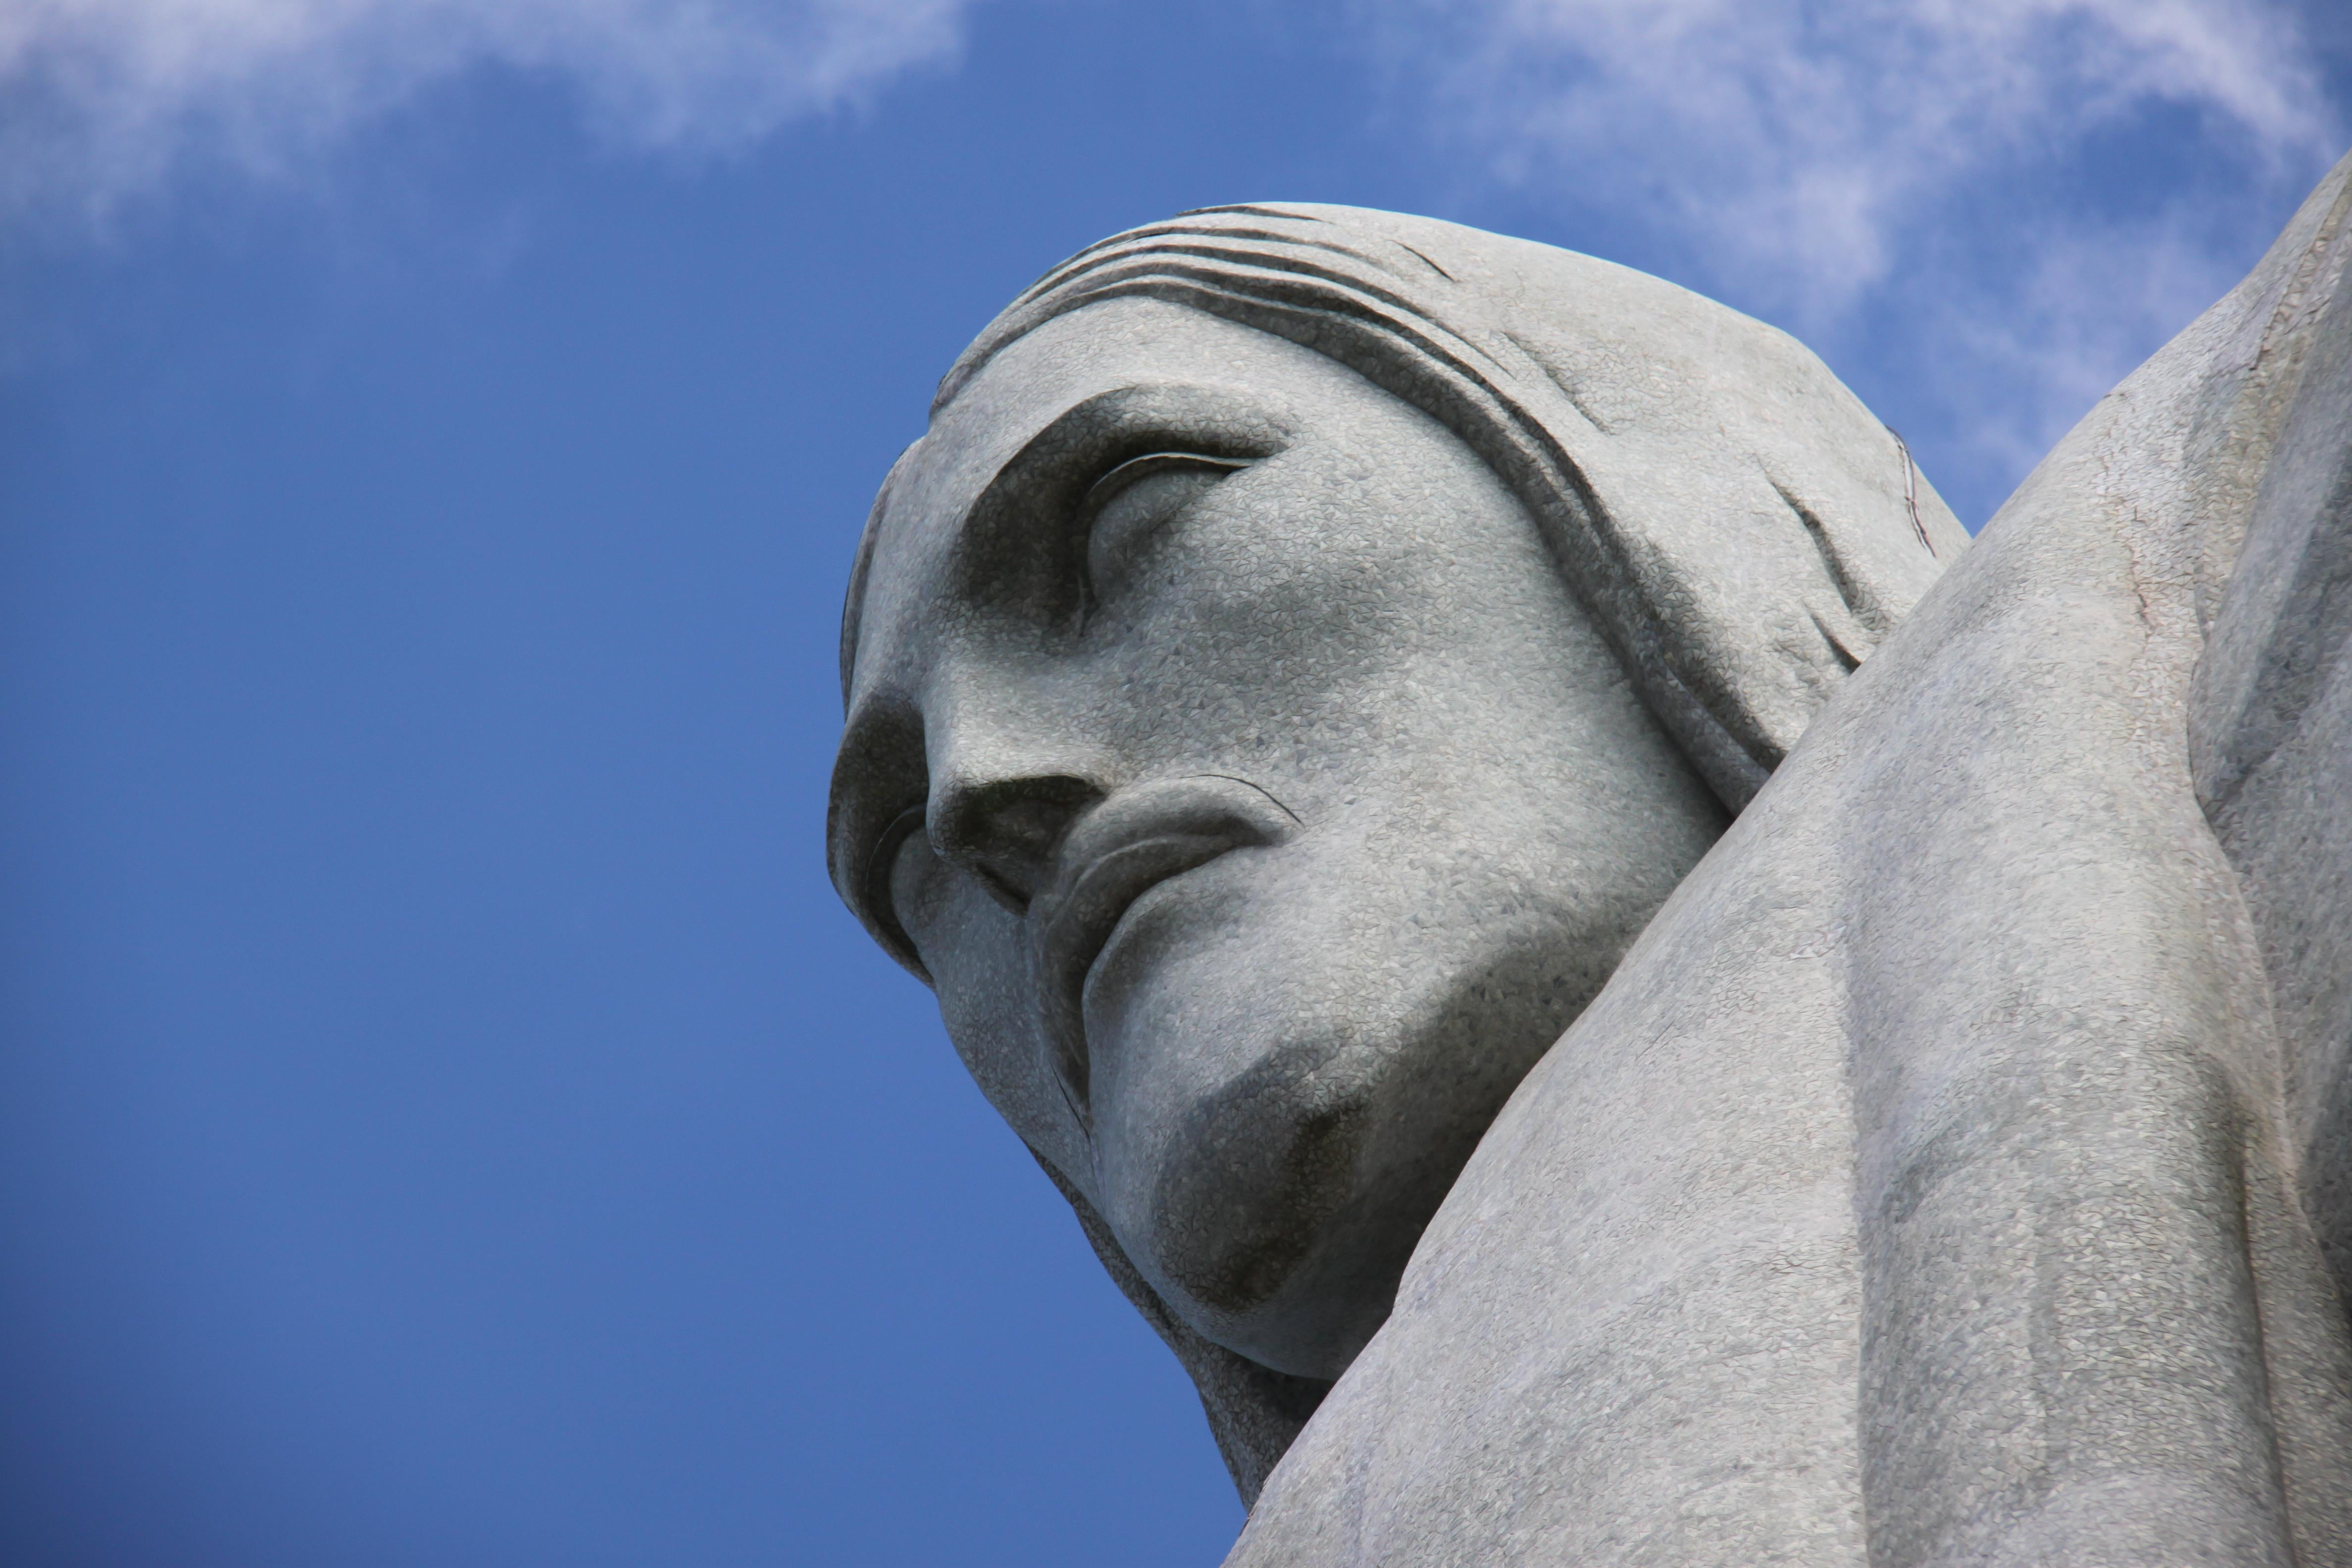 Statue in Christ the Redeemer